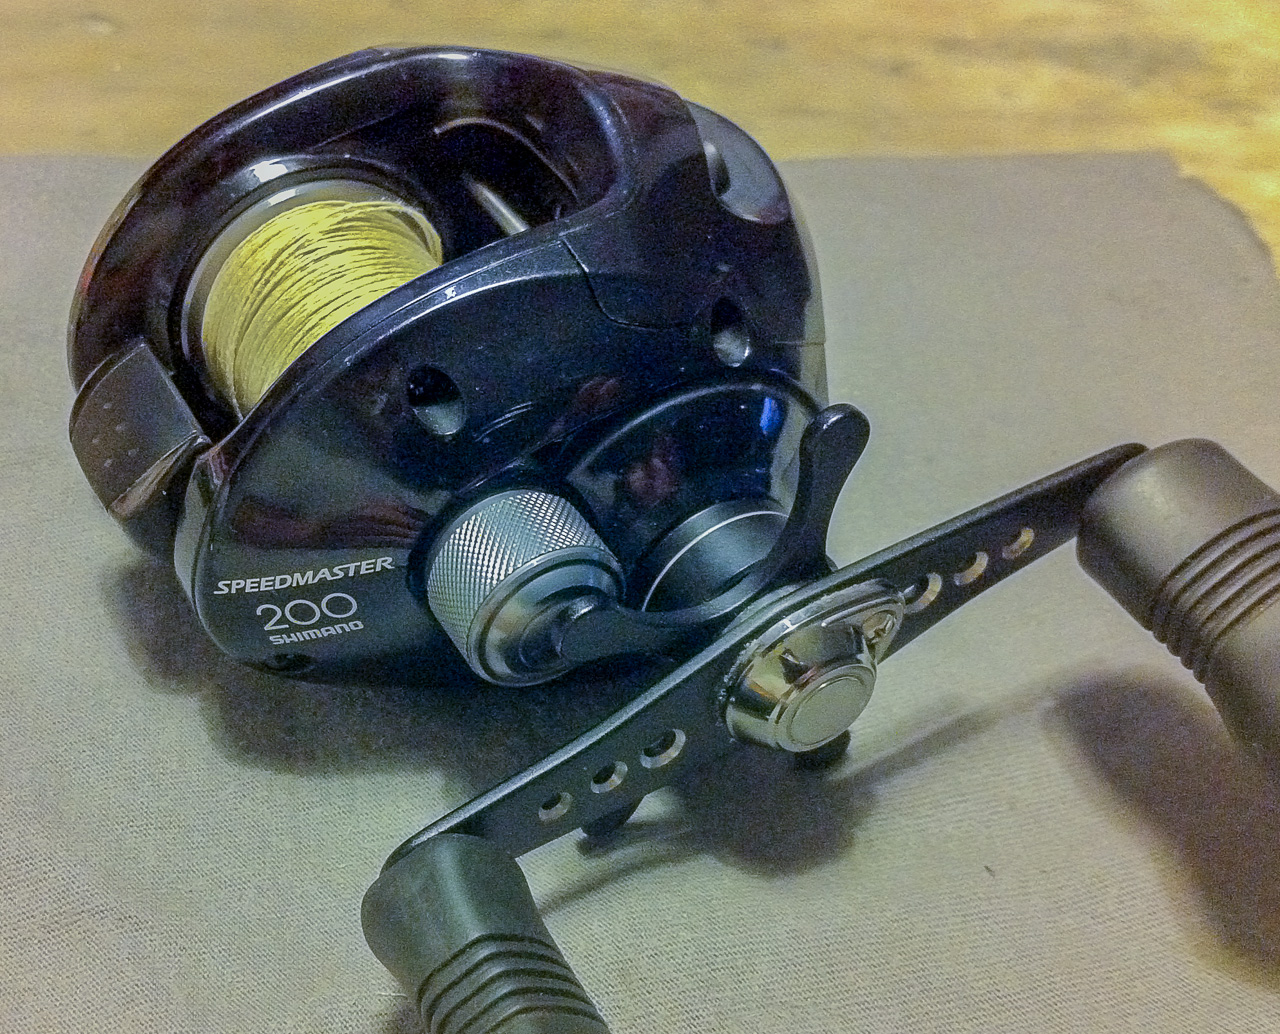 Reel pimping & angling master baiting adventures: More speed for the